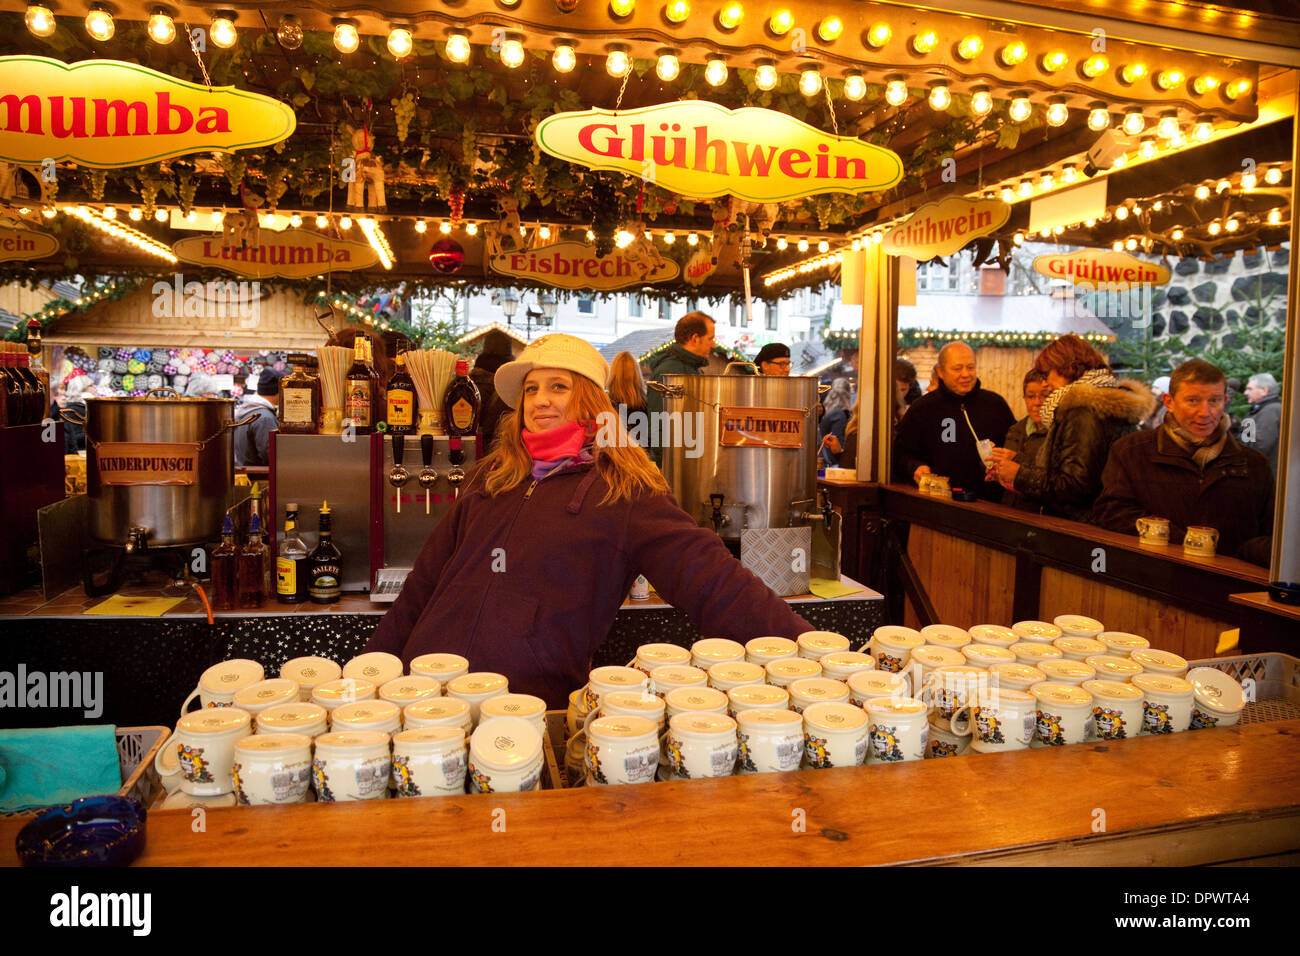 Gluhwein stall, mulled wine for sale with stallholder, at the ...